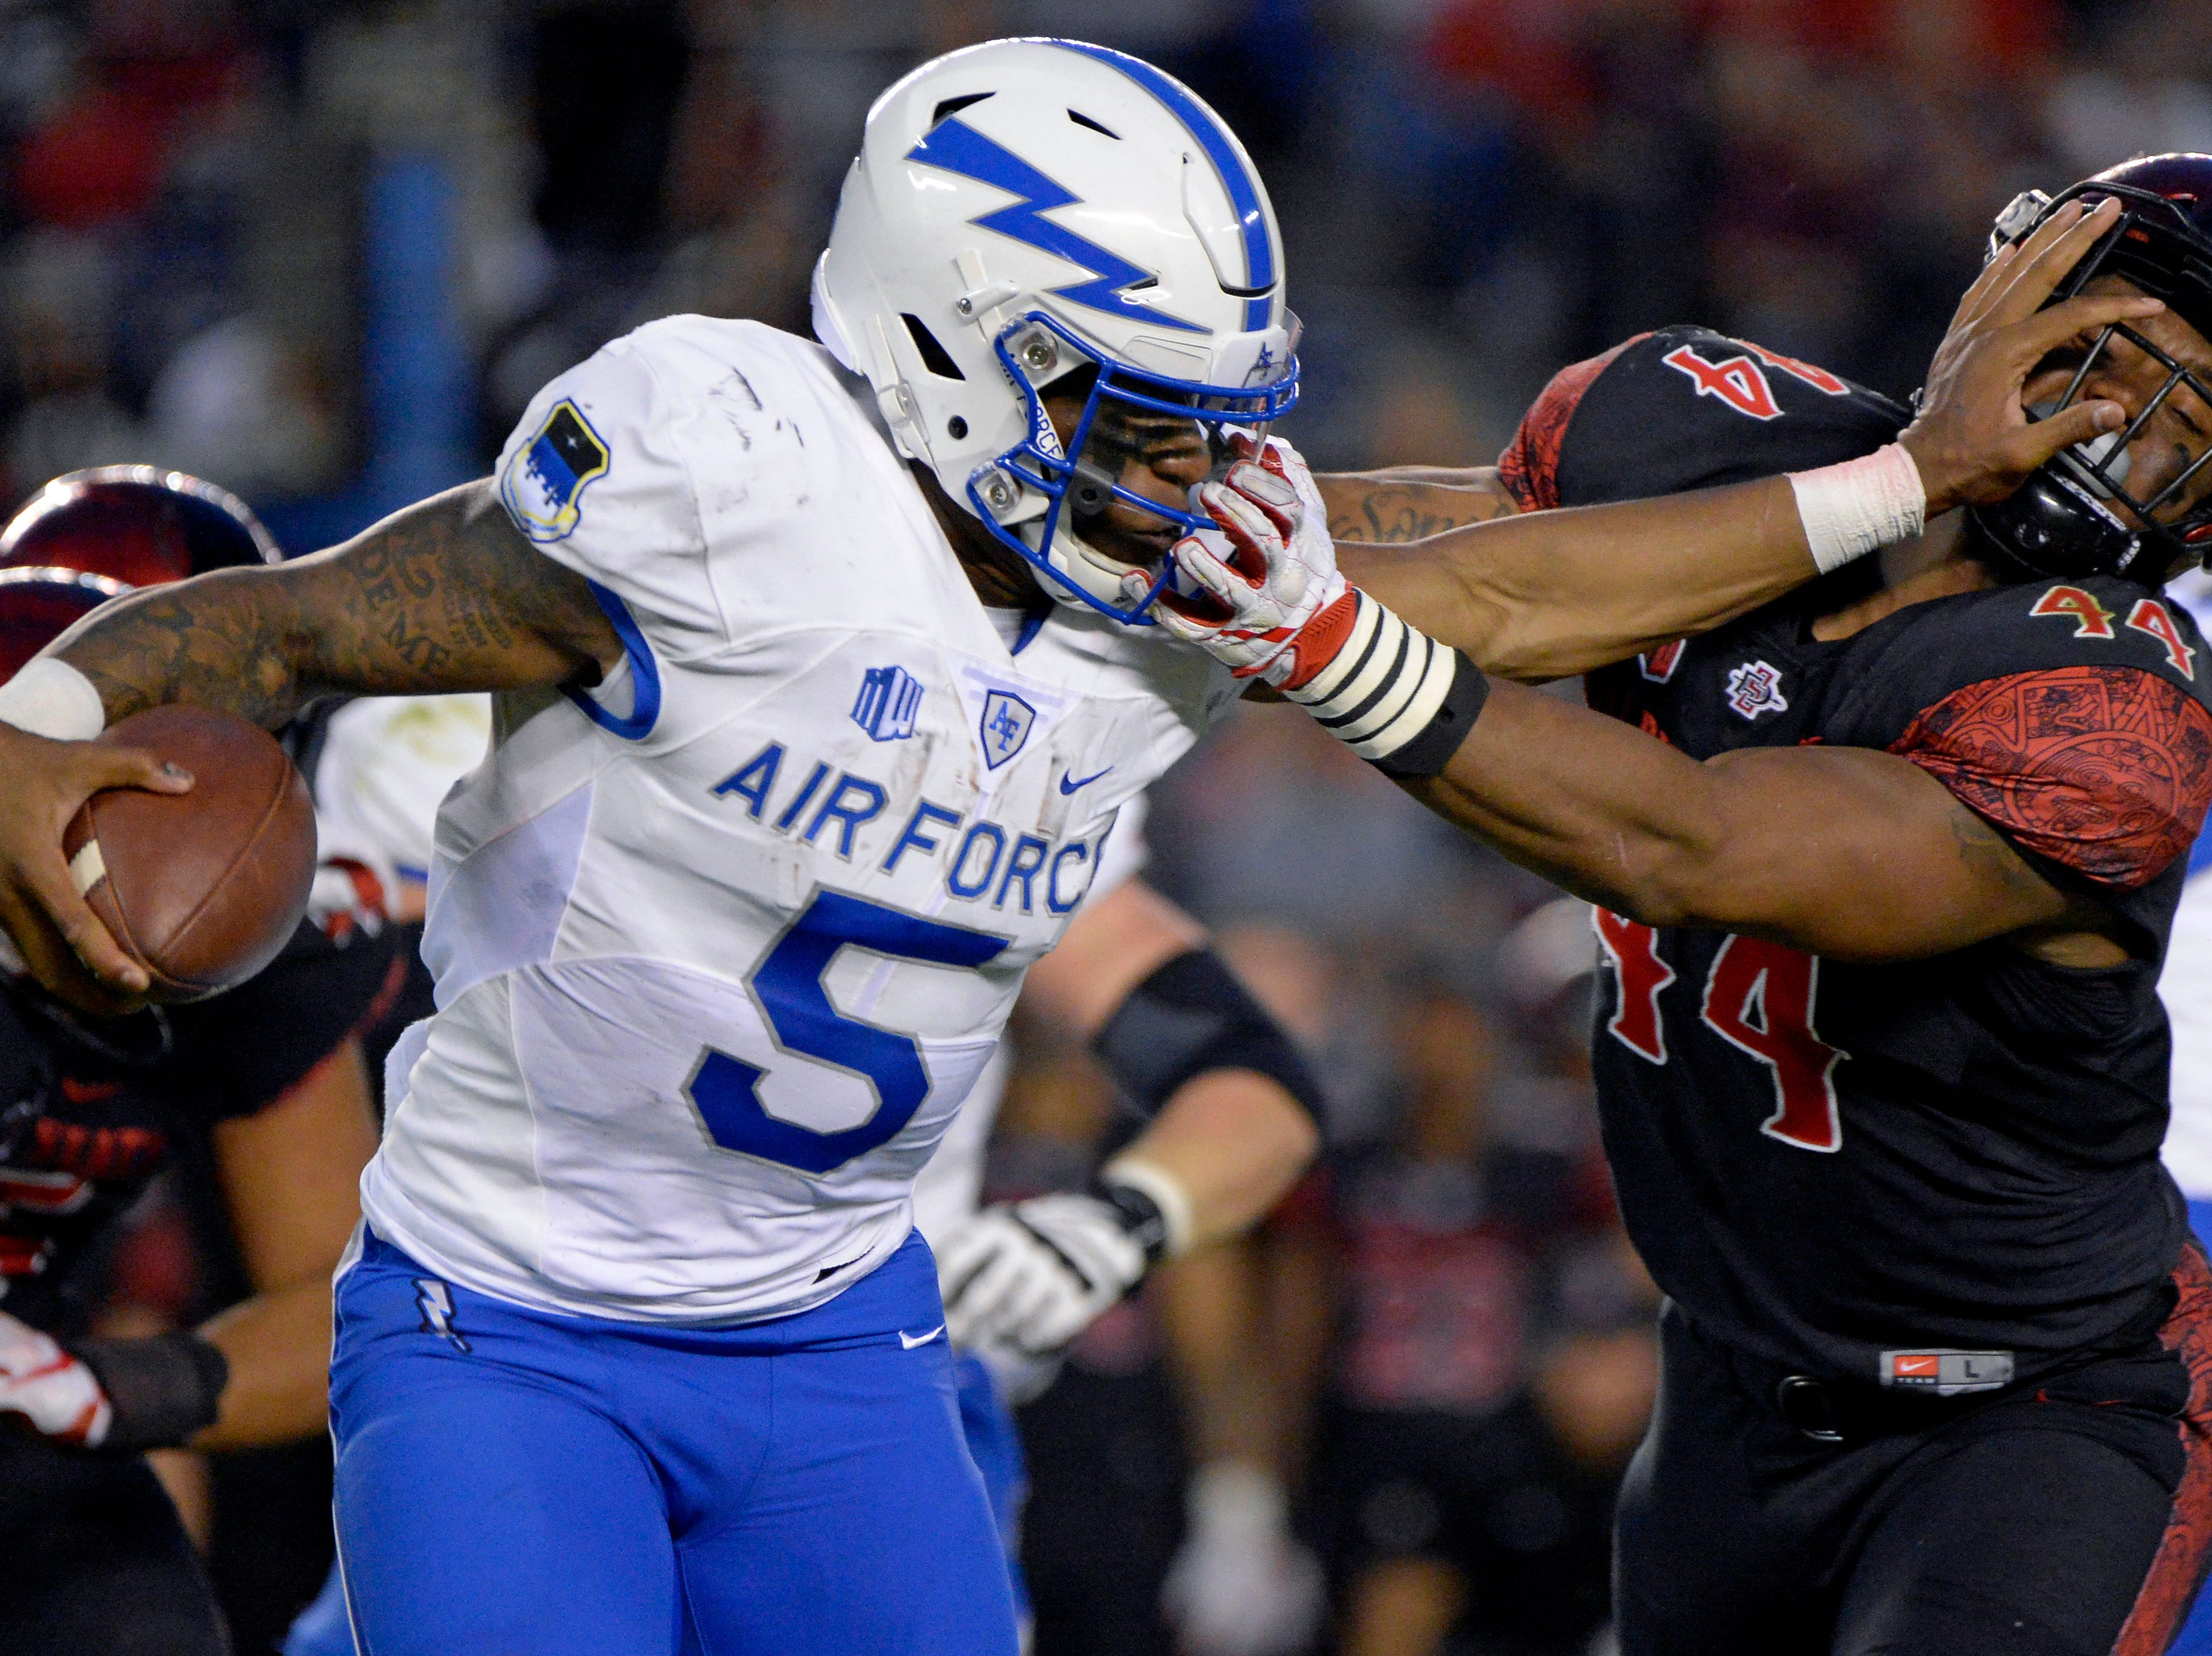 Air Force Falcons quarterback Donald Hammond III (5) runs the ball as San Diego State Aztecs linebacker Kyahva Tezino (44) defends during the first quarter at SDCCU Stadium.